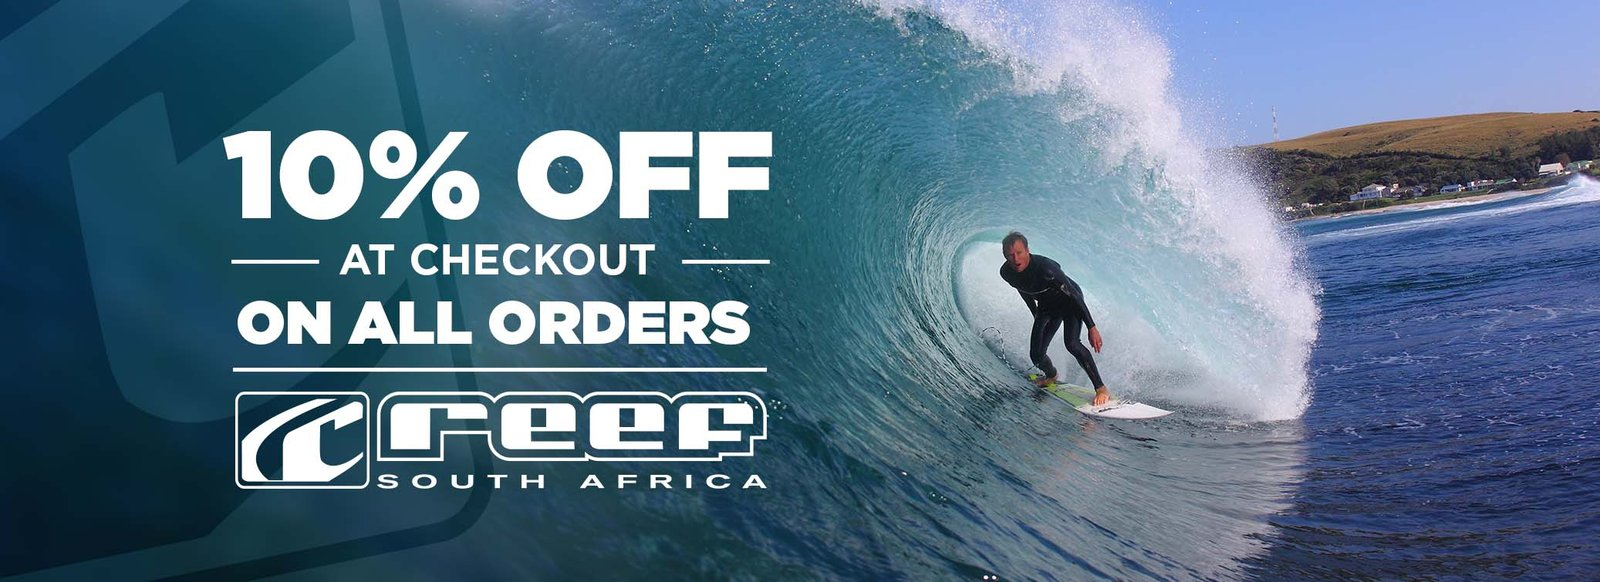 Reef Wetsuits South Africa